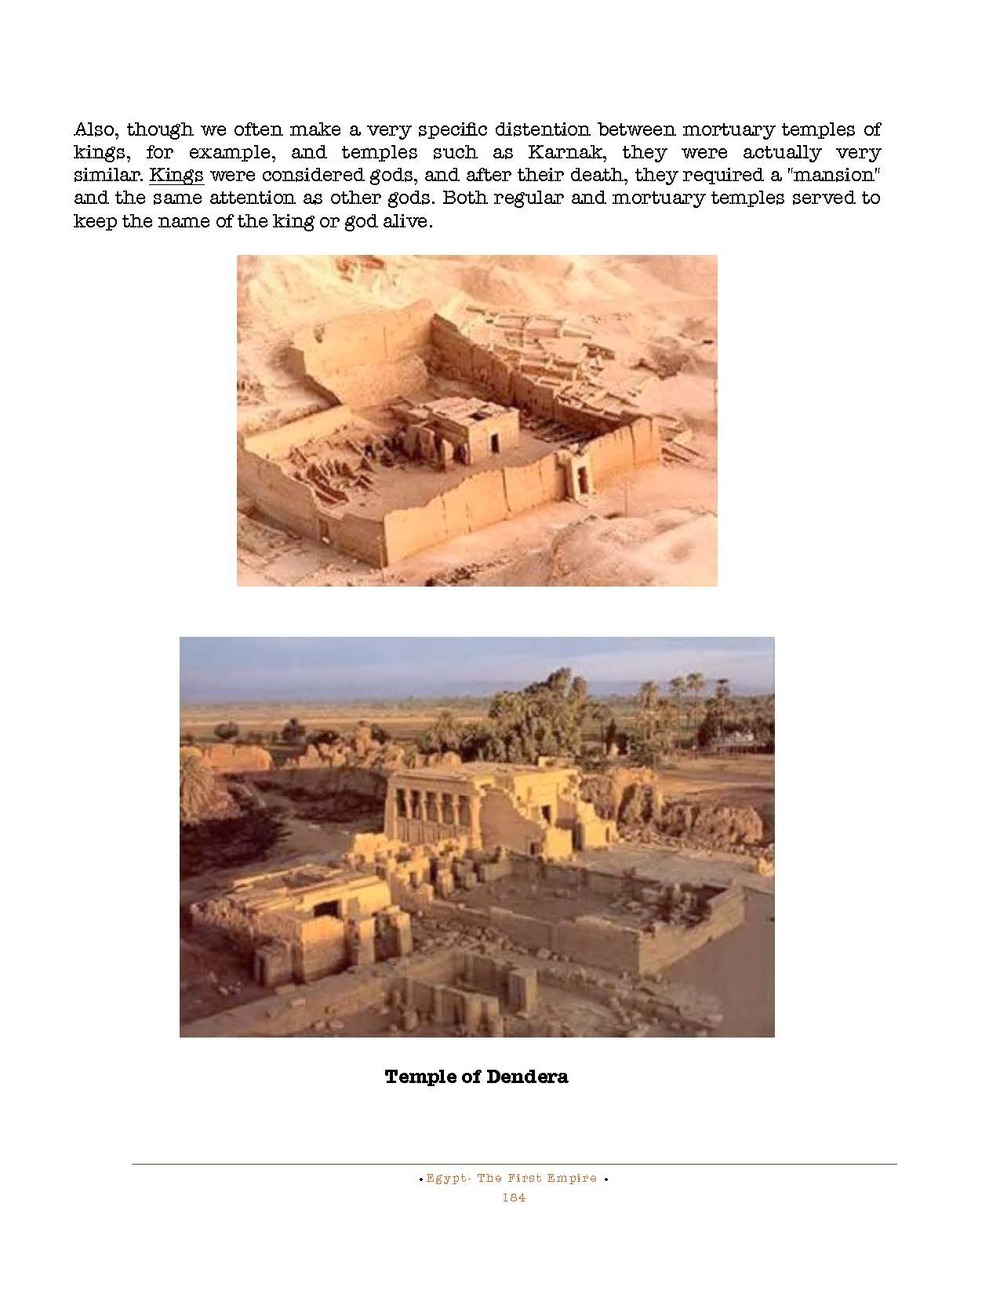 HOCE- Egypt  (First Empire) Notes_Page_184.jpg